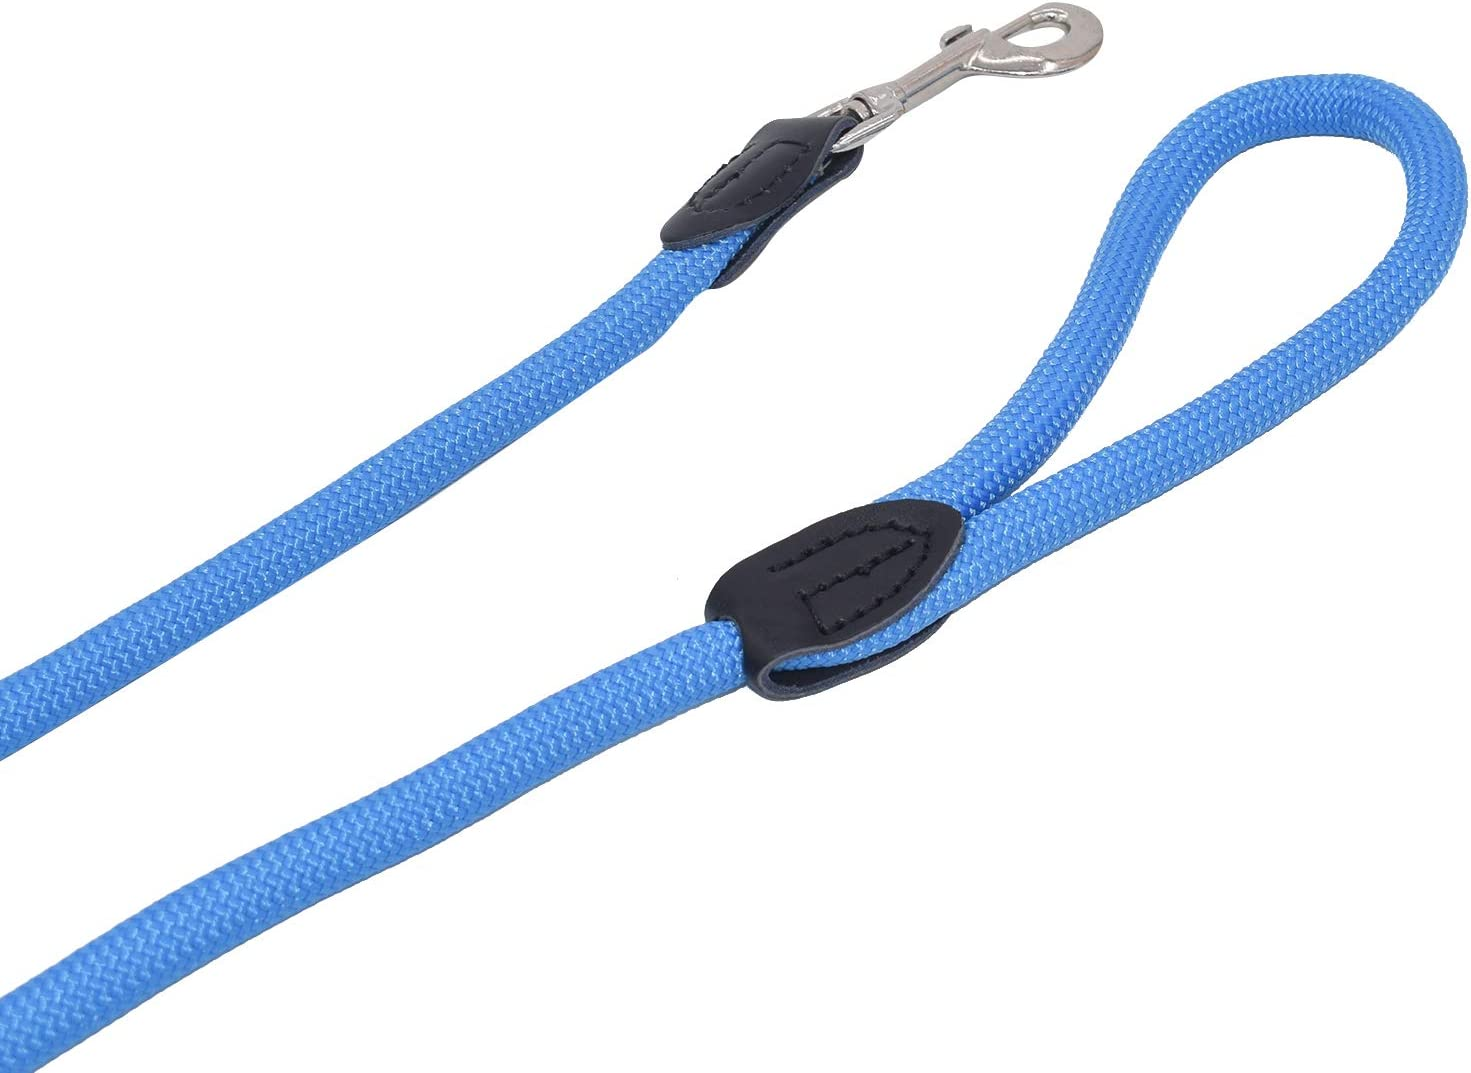 Molaxpet 4Ft Durable Comfort Nylon Rope Leash for Dog Daily Training Walking